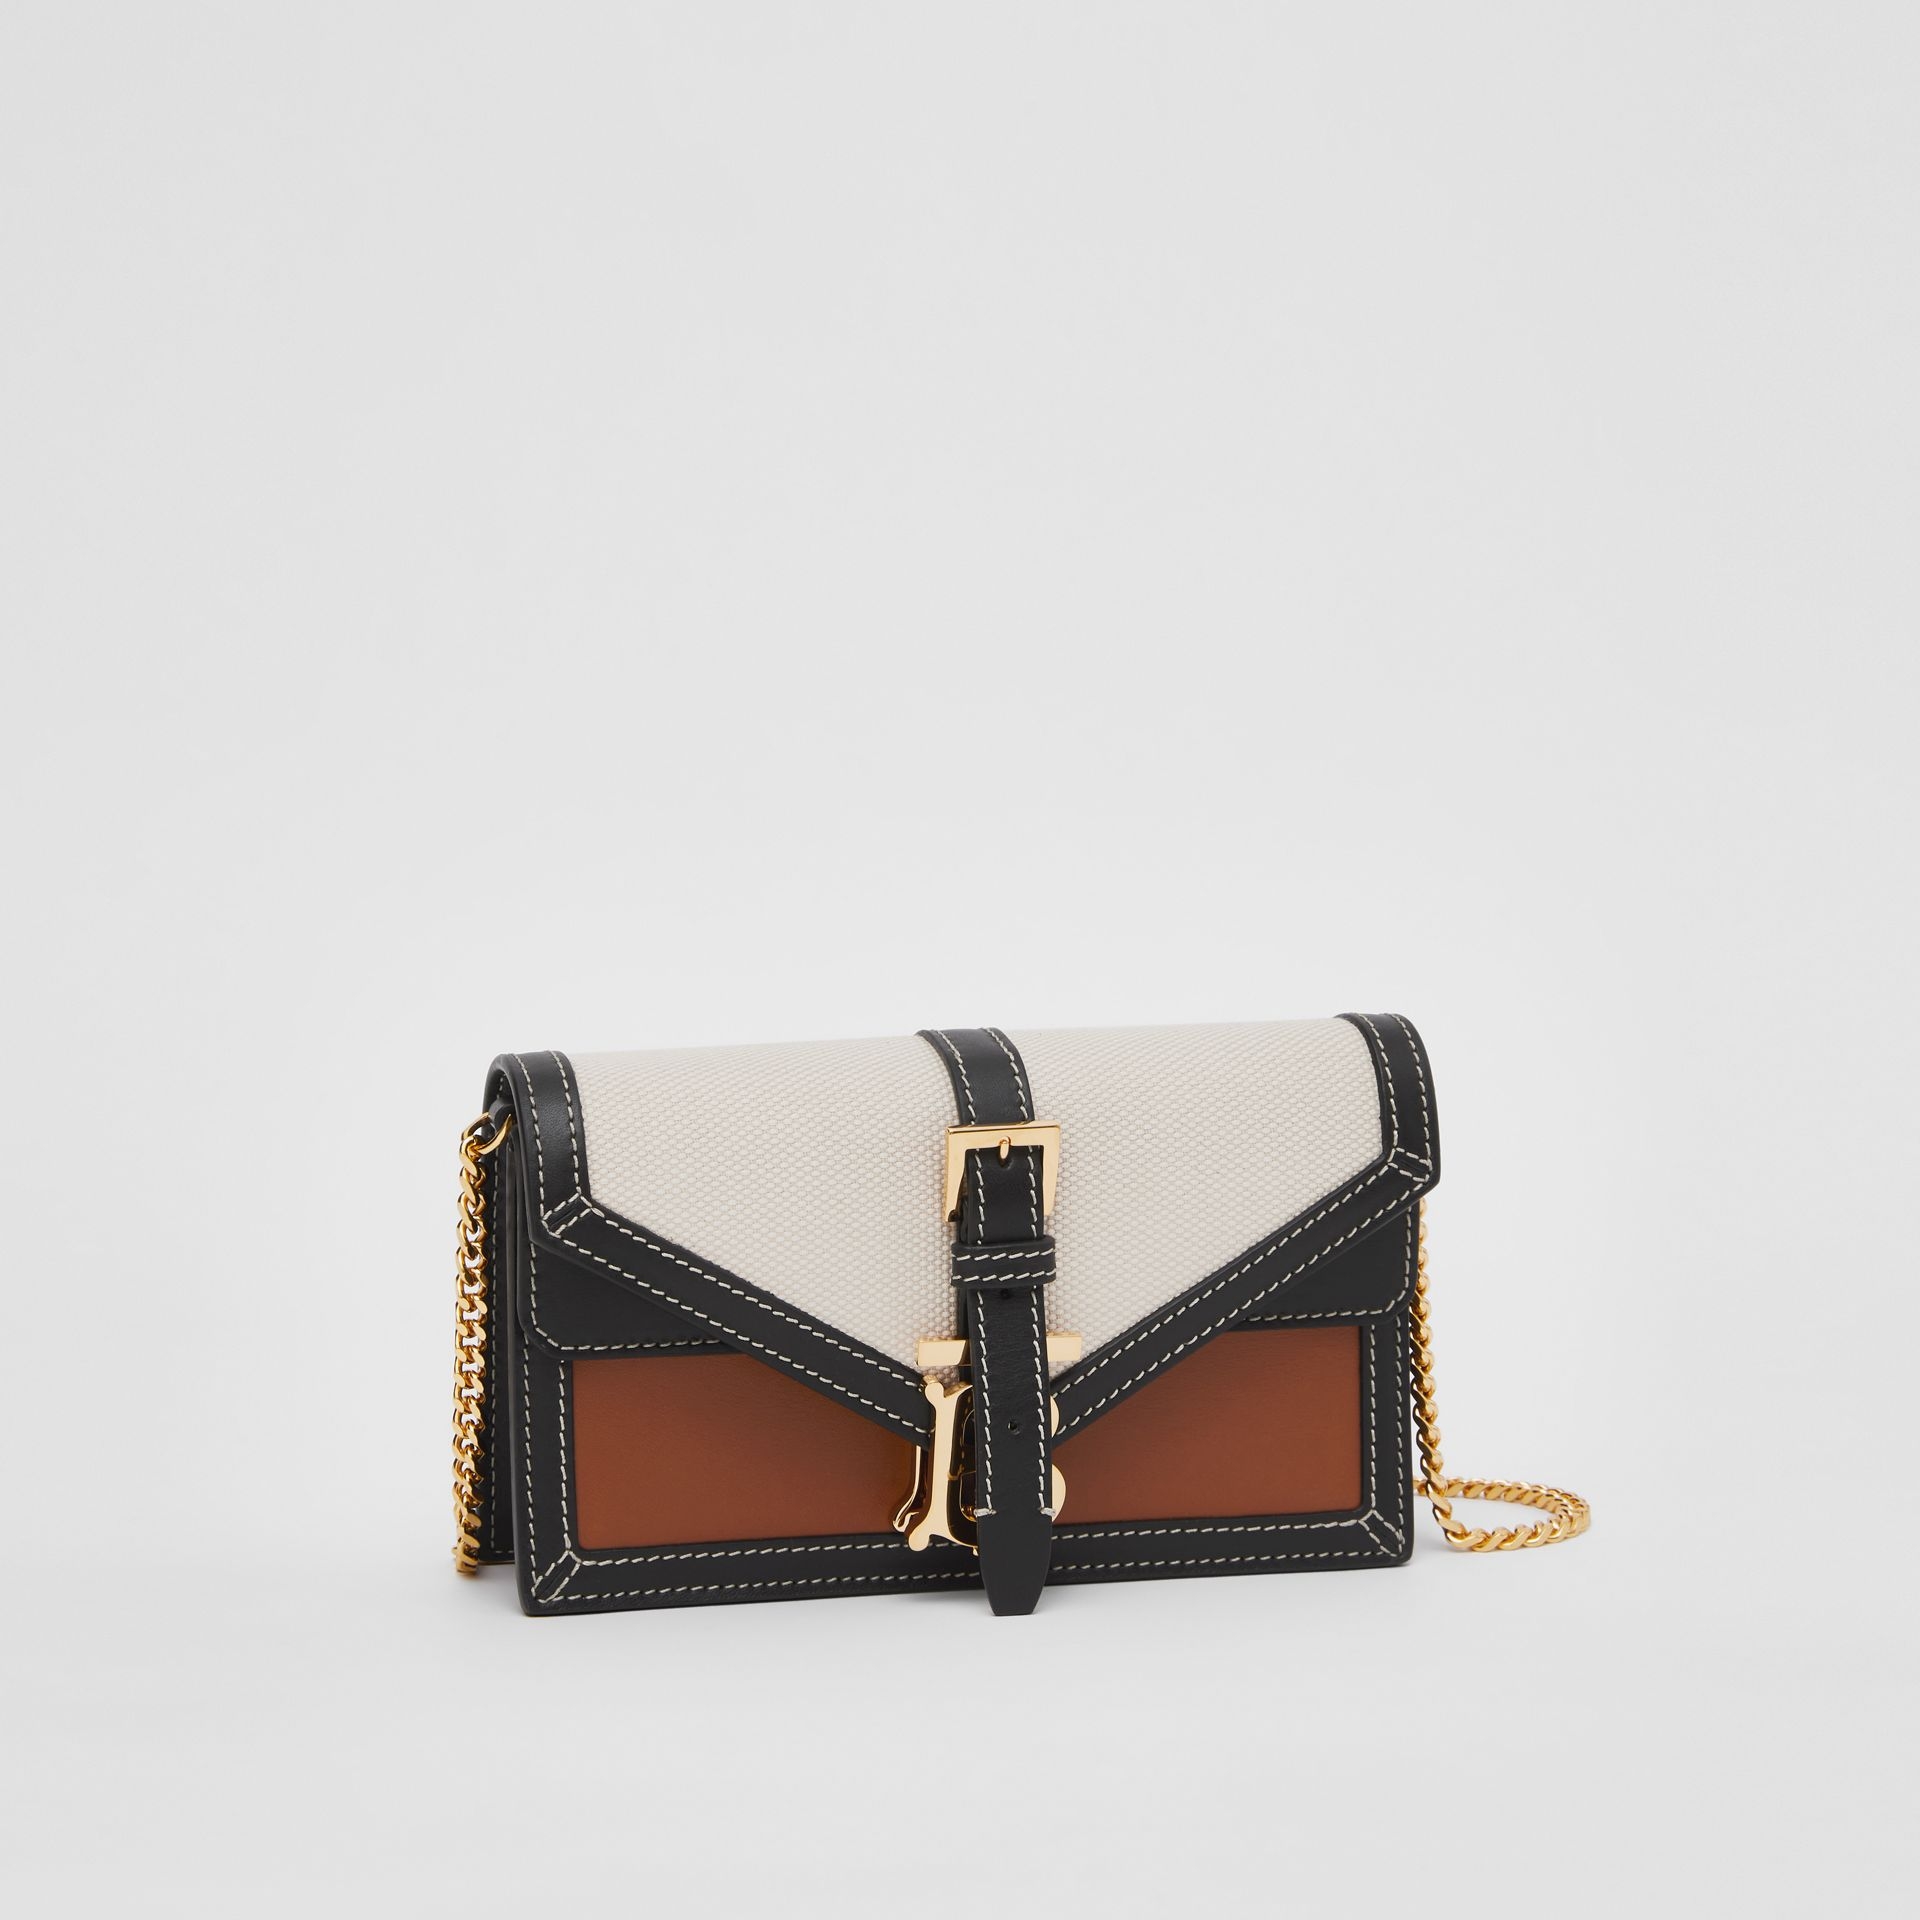 Mini Canvas and Leather TB Envelope Clutch in Tan - Women | Burberry - gallery image 4